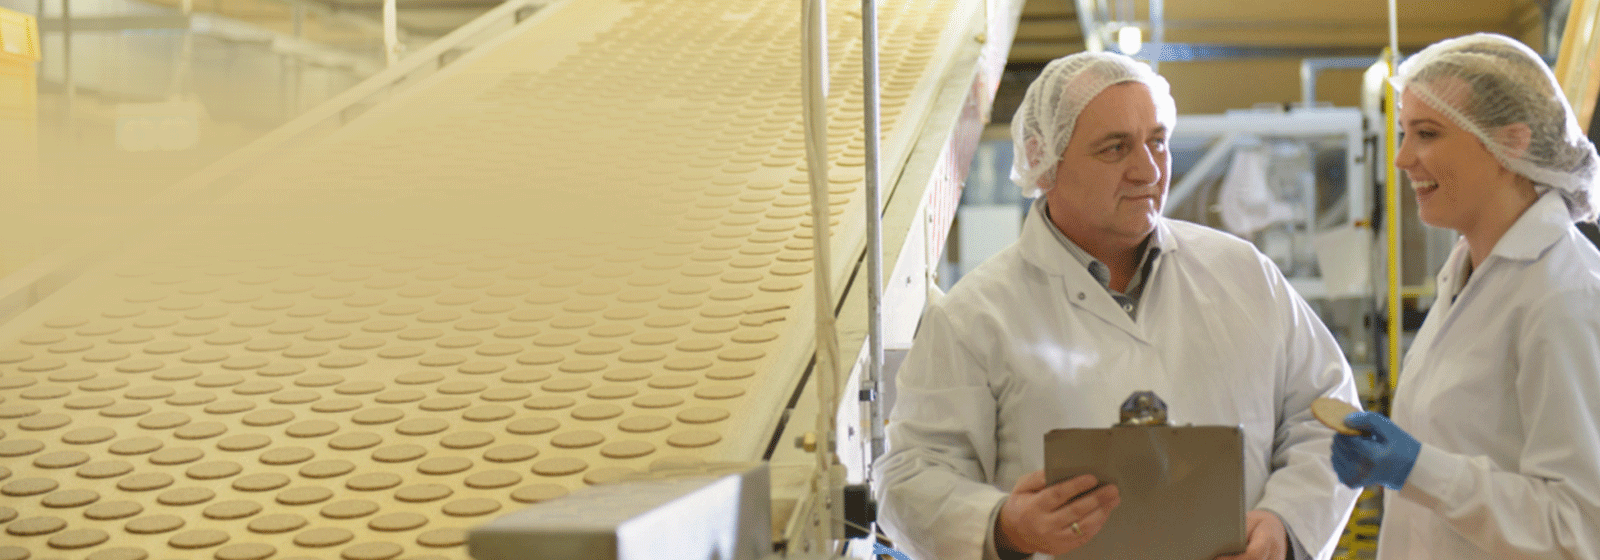 People working in biscuit factory